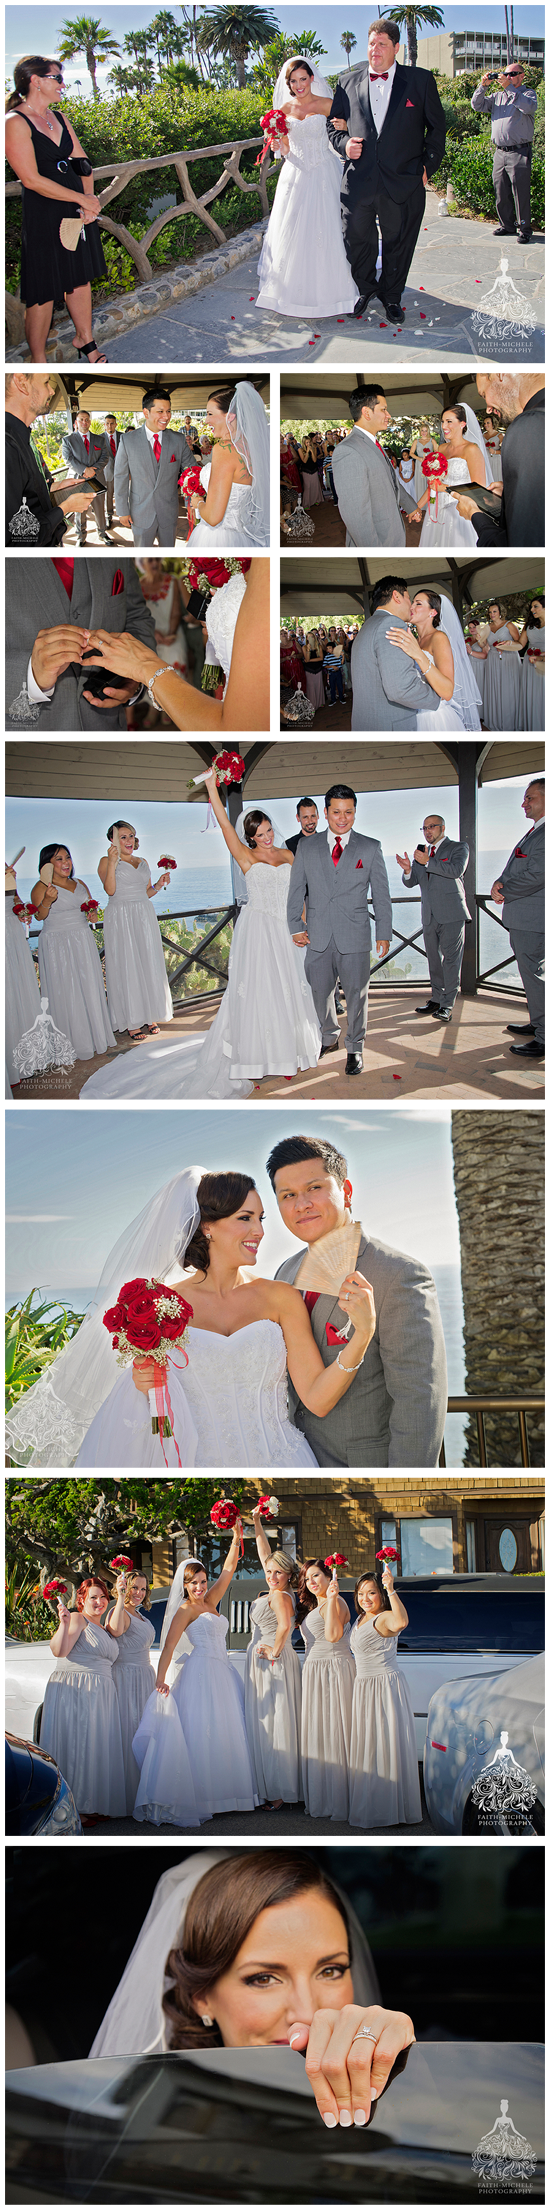 3 Heisler Park At Laguna Beach Wedding Photo